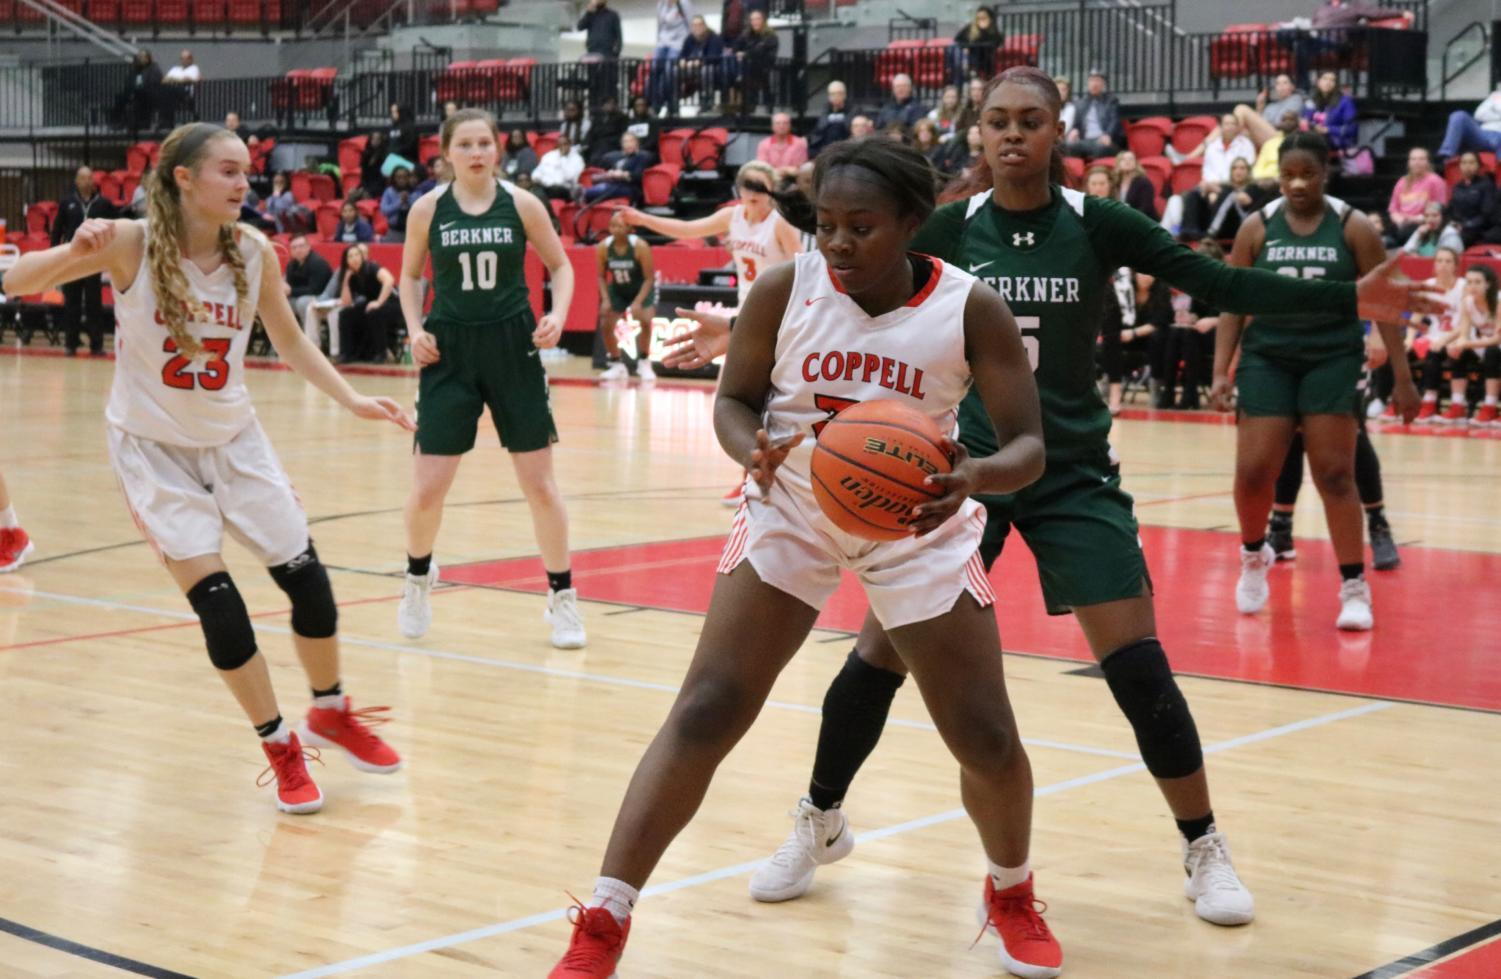 Coppell High School junior center Nicole Obialo boxes out to get a clear pass. The Coppell girls basketball team played against Berkner at the CHS Arena on Tuesday, Feb. 6 winning 58-34, (Sidekick File).